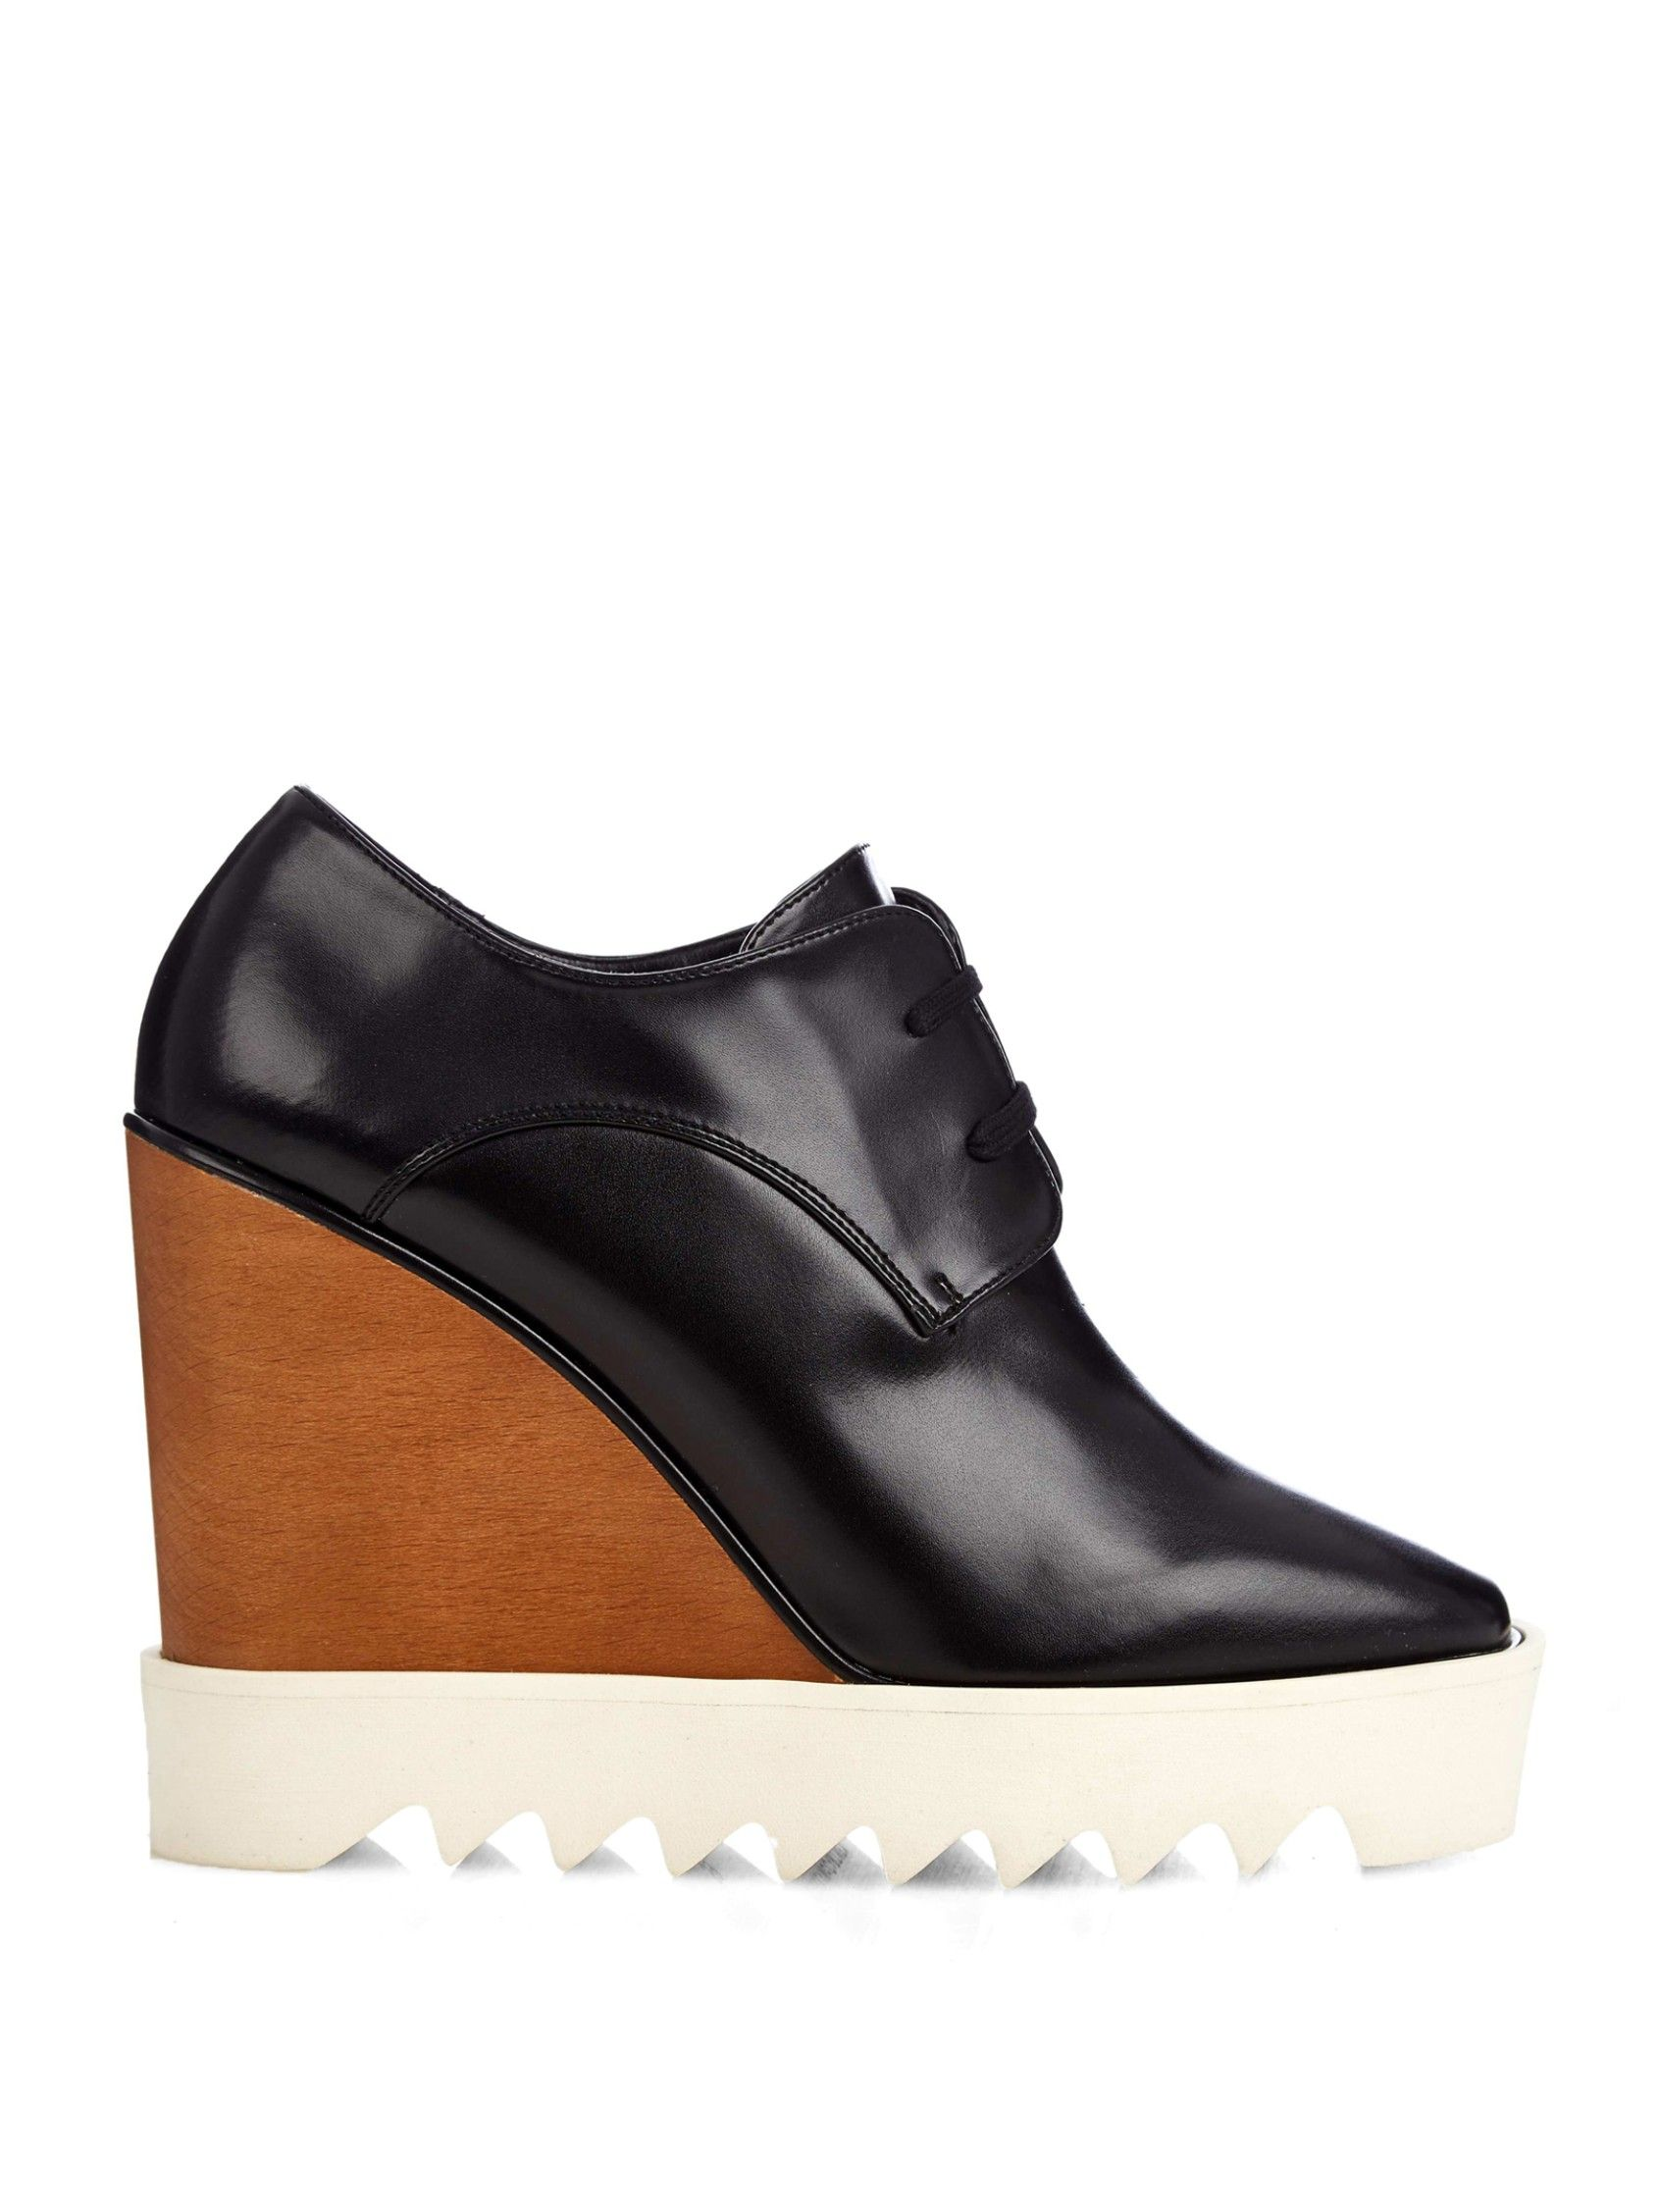 Stella McCartney Faux Leather Wedge